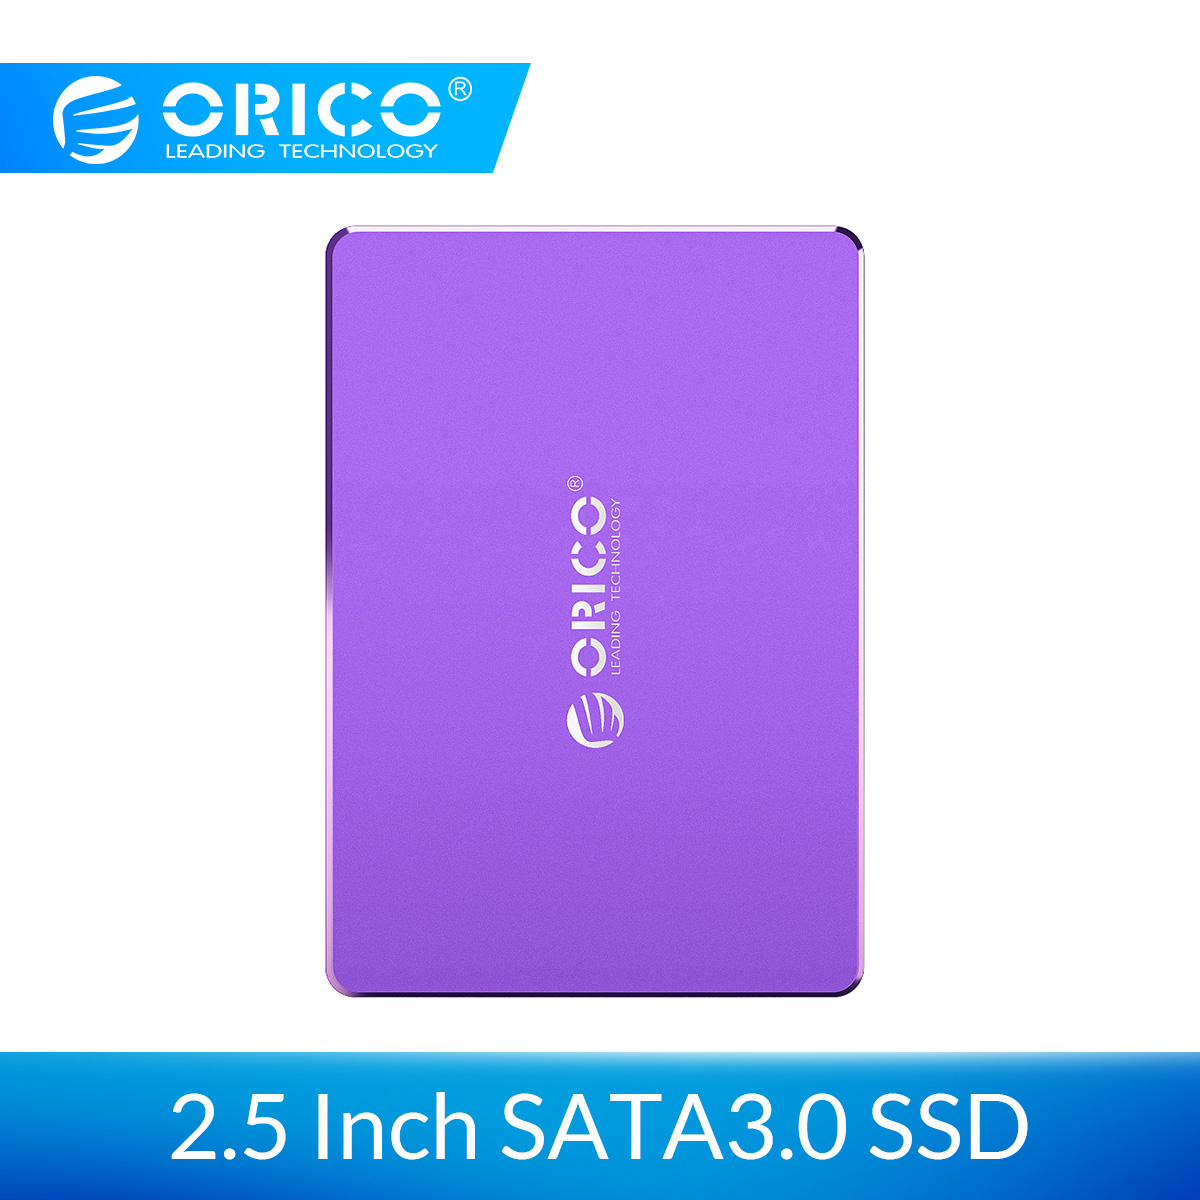 ORICO <font><b>SSD</b></font> 240GB 480GB <font><b>960GB</b></font> <font><b>SSD</b></font> 2.5 Inch SATA <font><b>SSD</b></font> Internal Solid State Disk For Desktop Laptop Raptor Series Game SATA3.0 <font><b>SSD</b></font> image